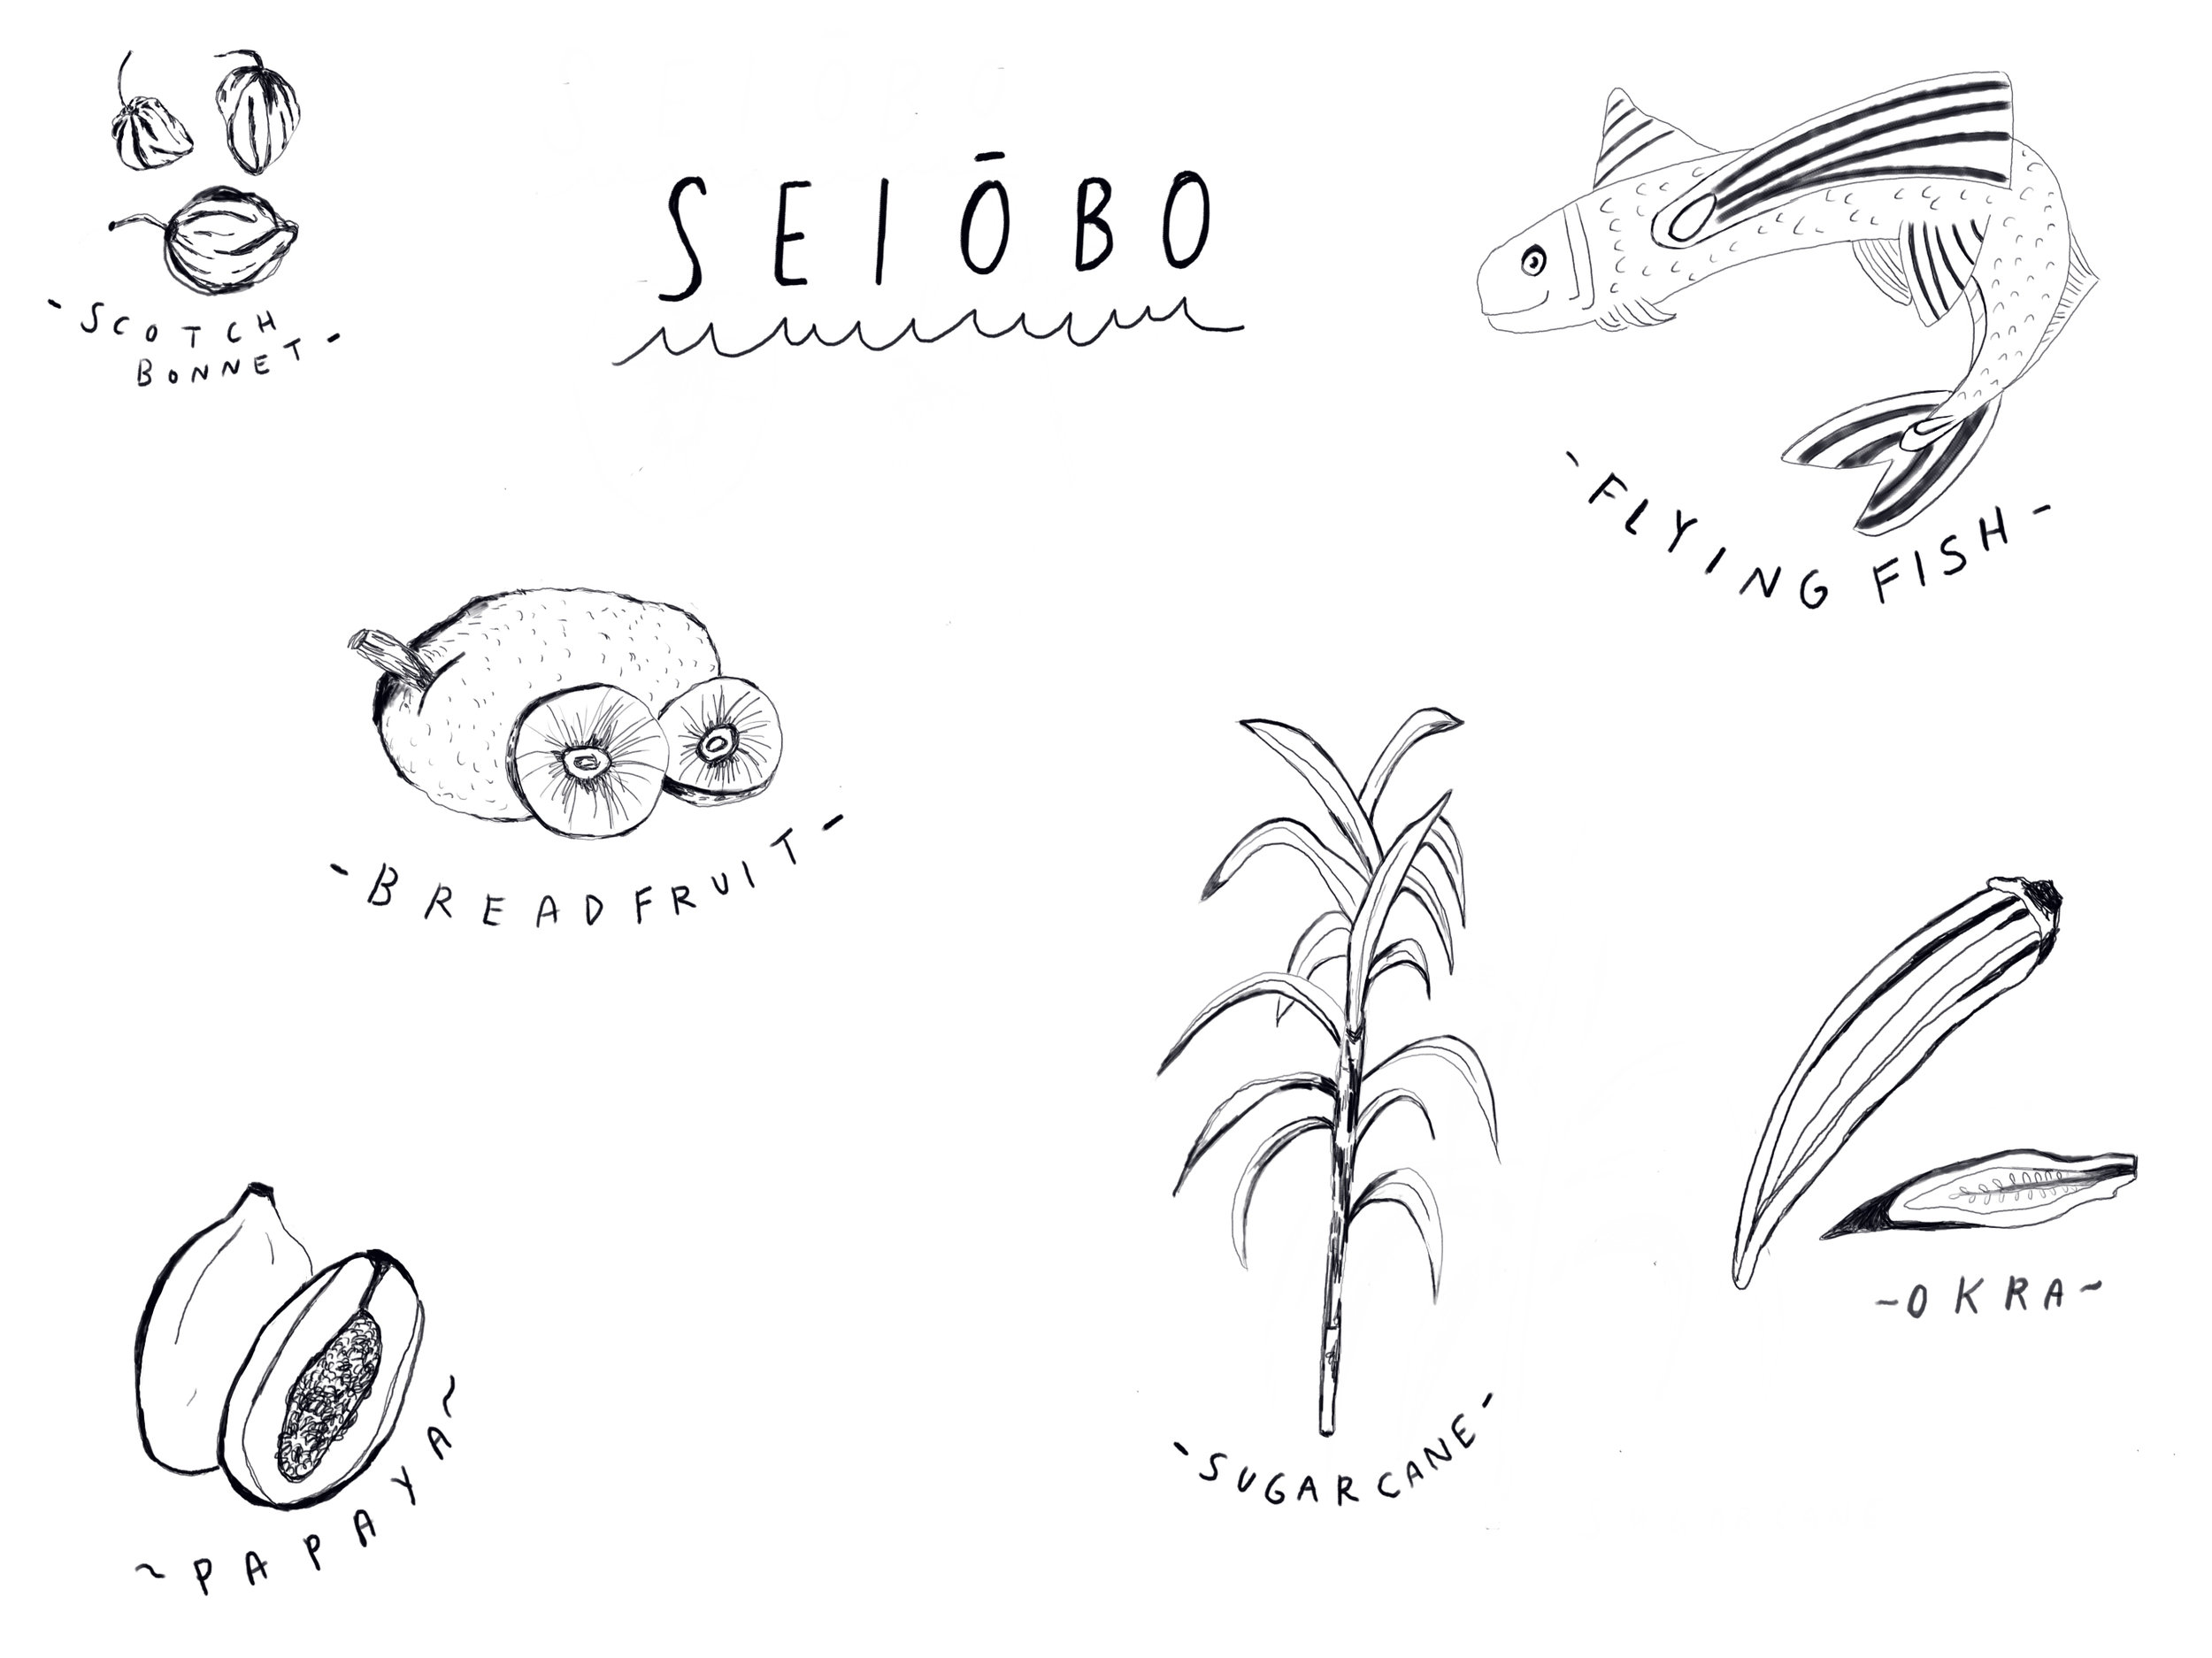 Seiobo illustrations.jpg